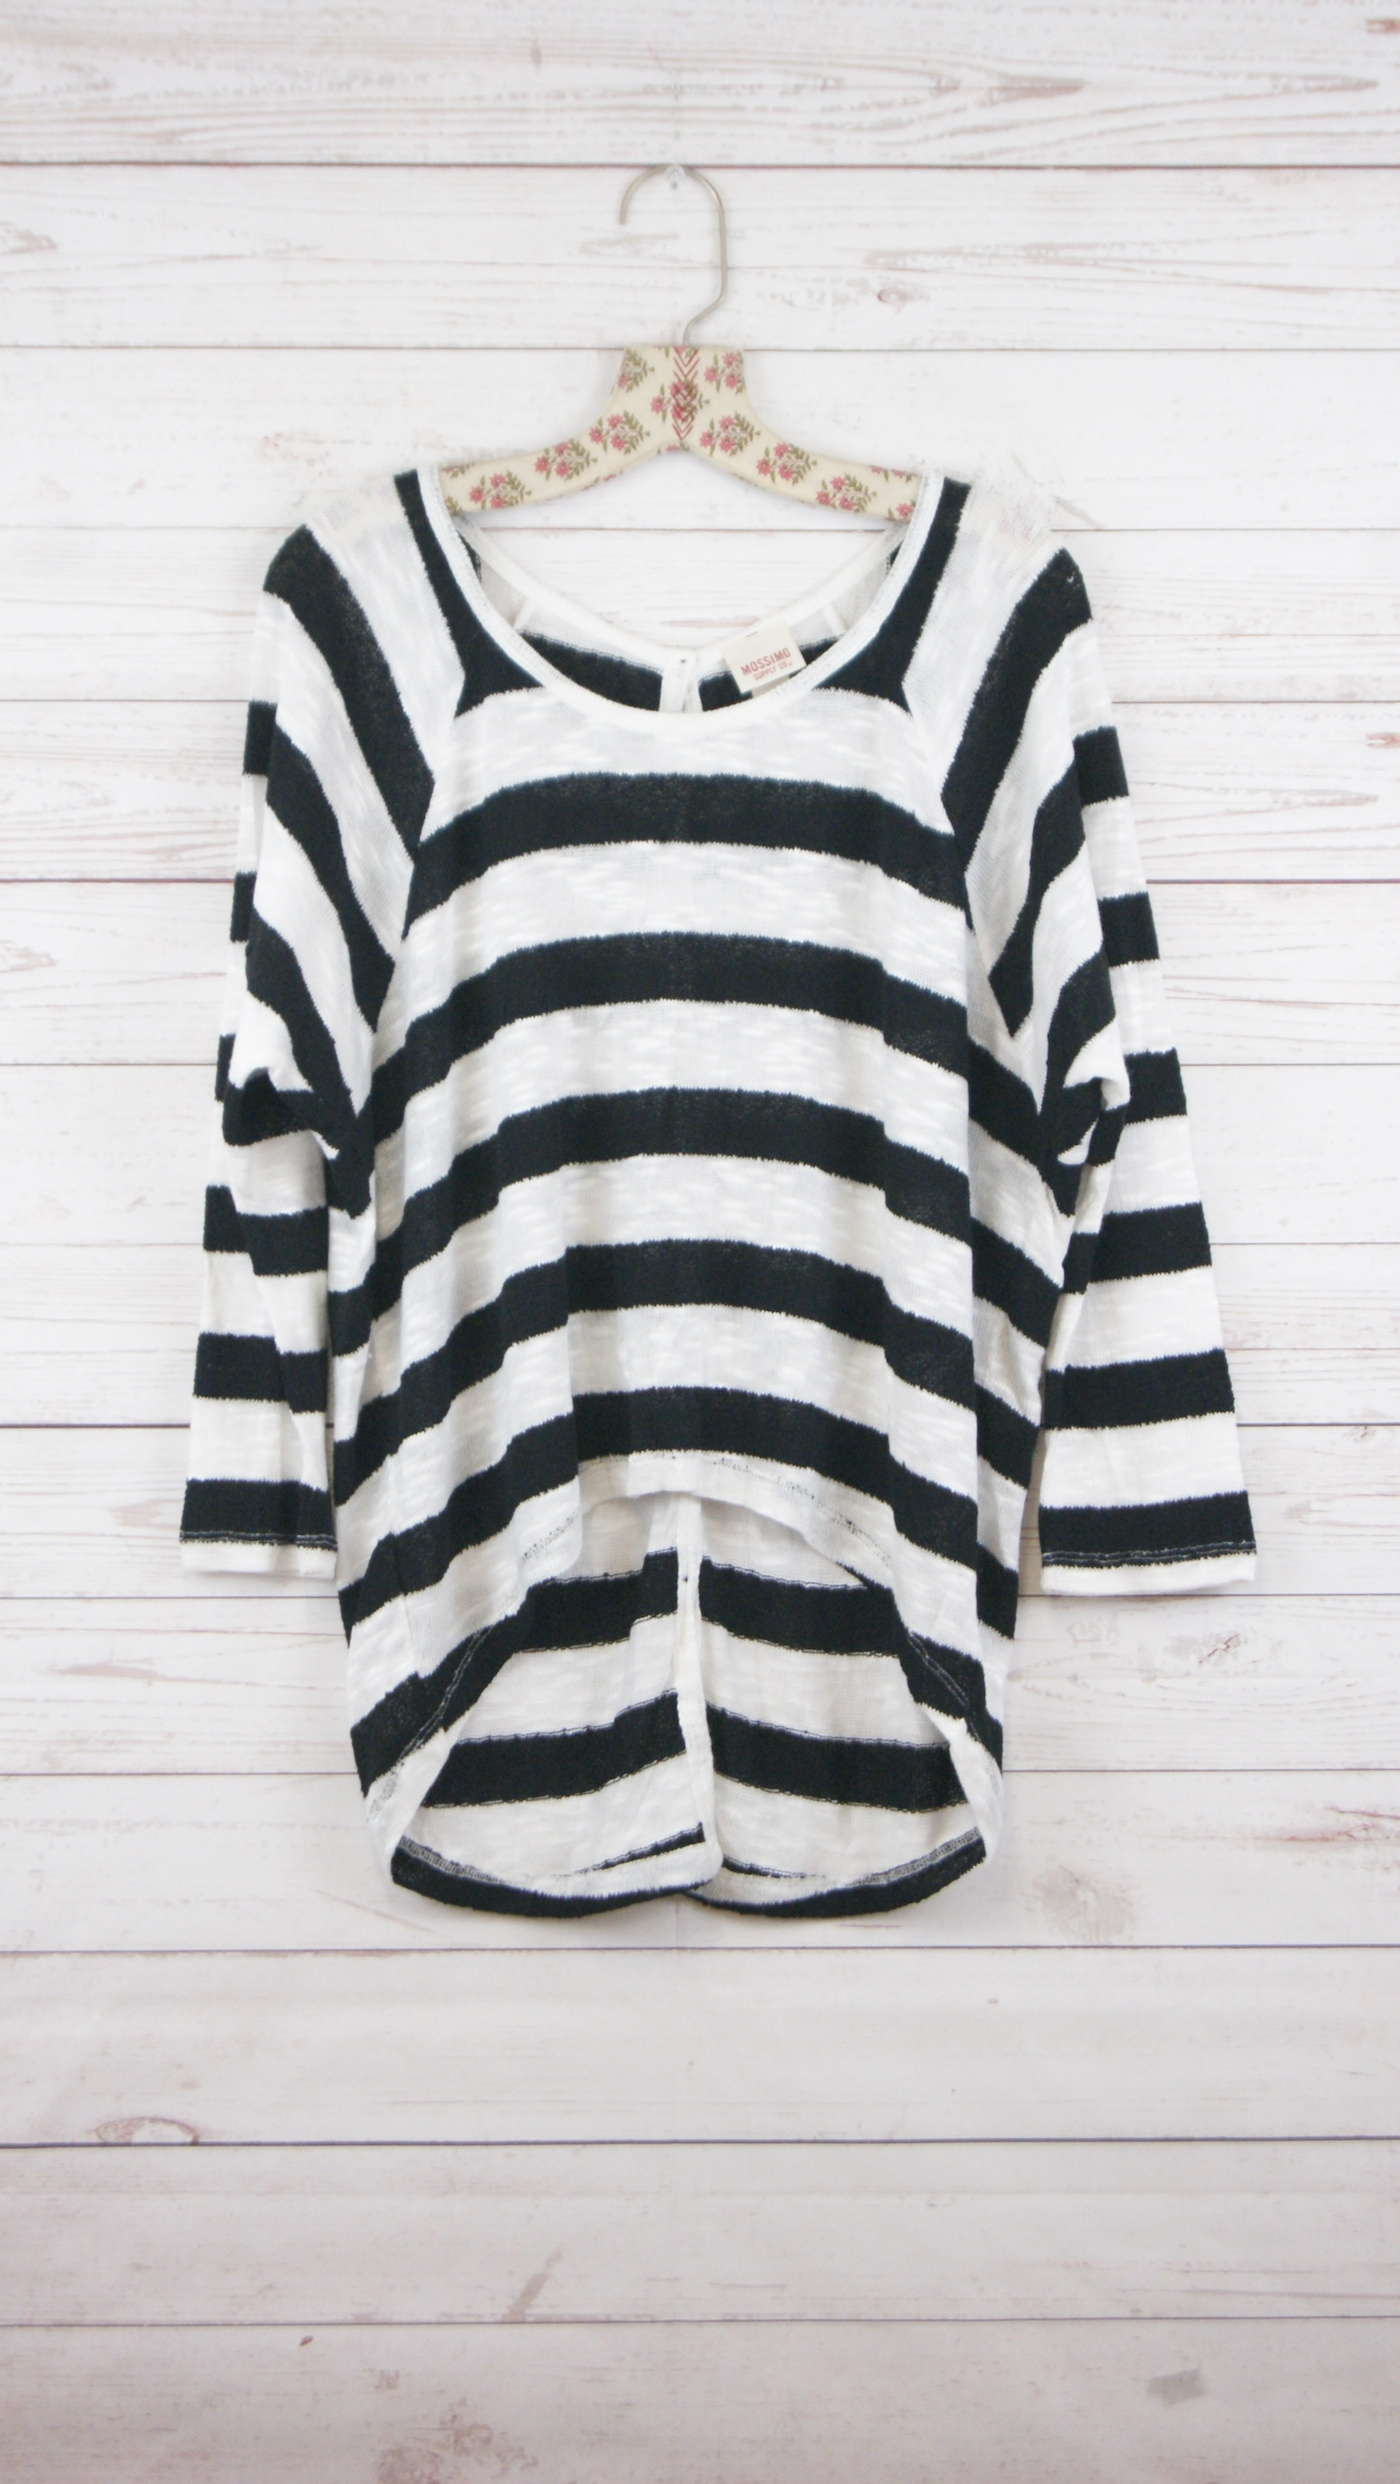 New-Mossimo-Womens-3-4-Sleeve-Striped-Casual-Knit-Top-Blouse-Black-amp-White-M-25 thumbnail 2